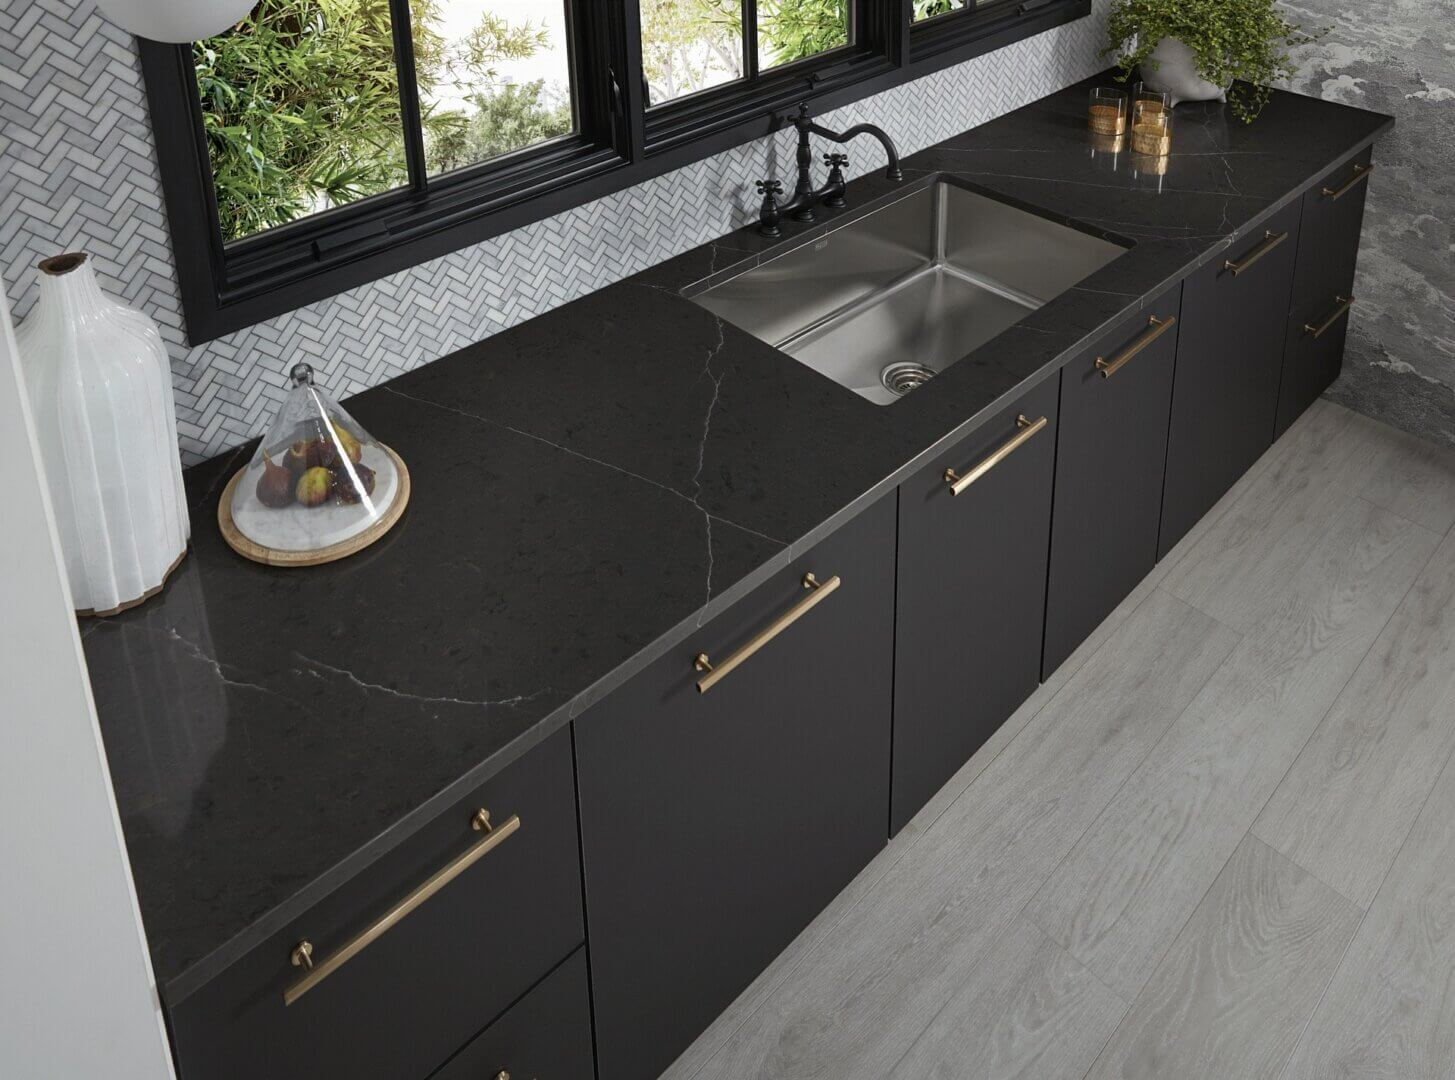 Wilsonart new Quartz designs express textures, colors and patterns inspired by the earth's ancient mineral compositions.